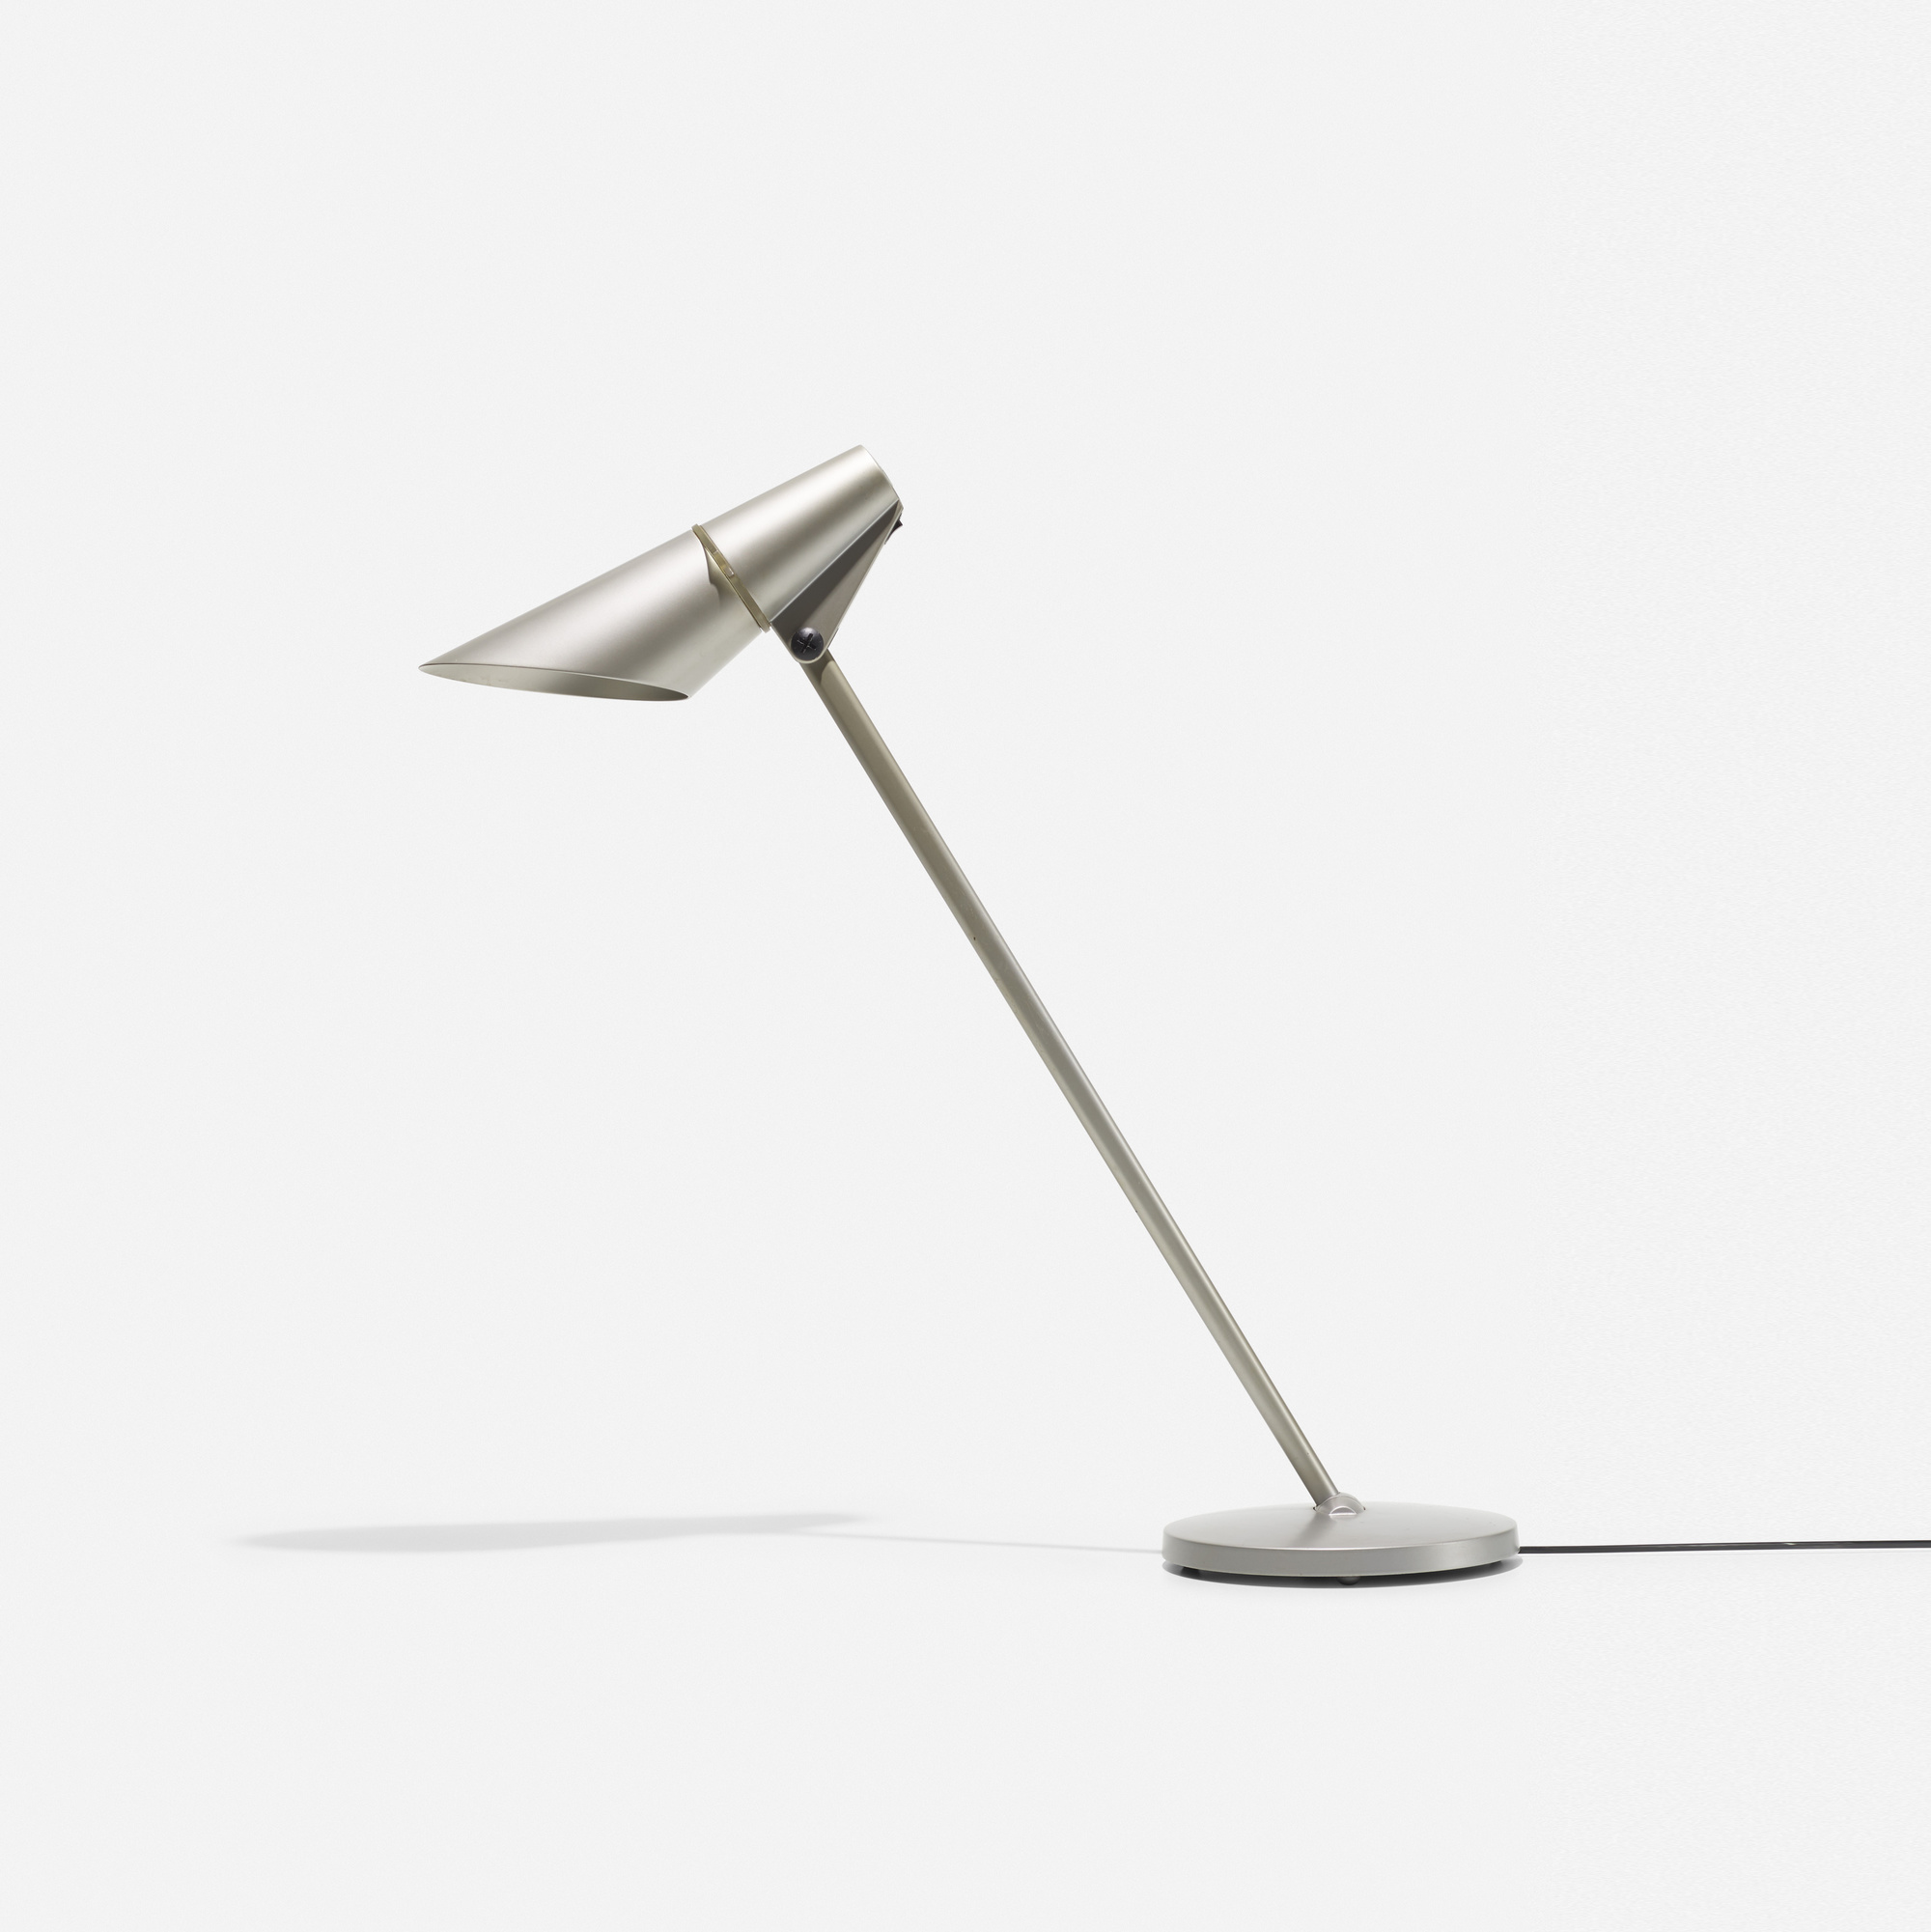 315: Hannes Wettstein / Spy table lamp (1 of 3)